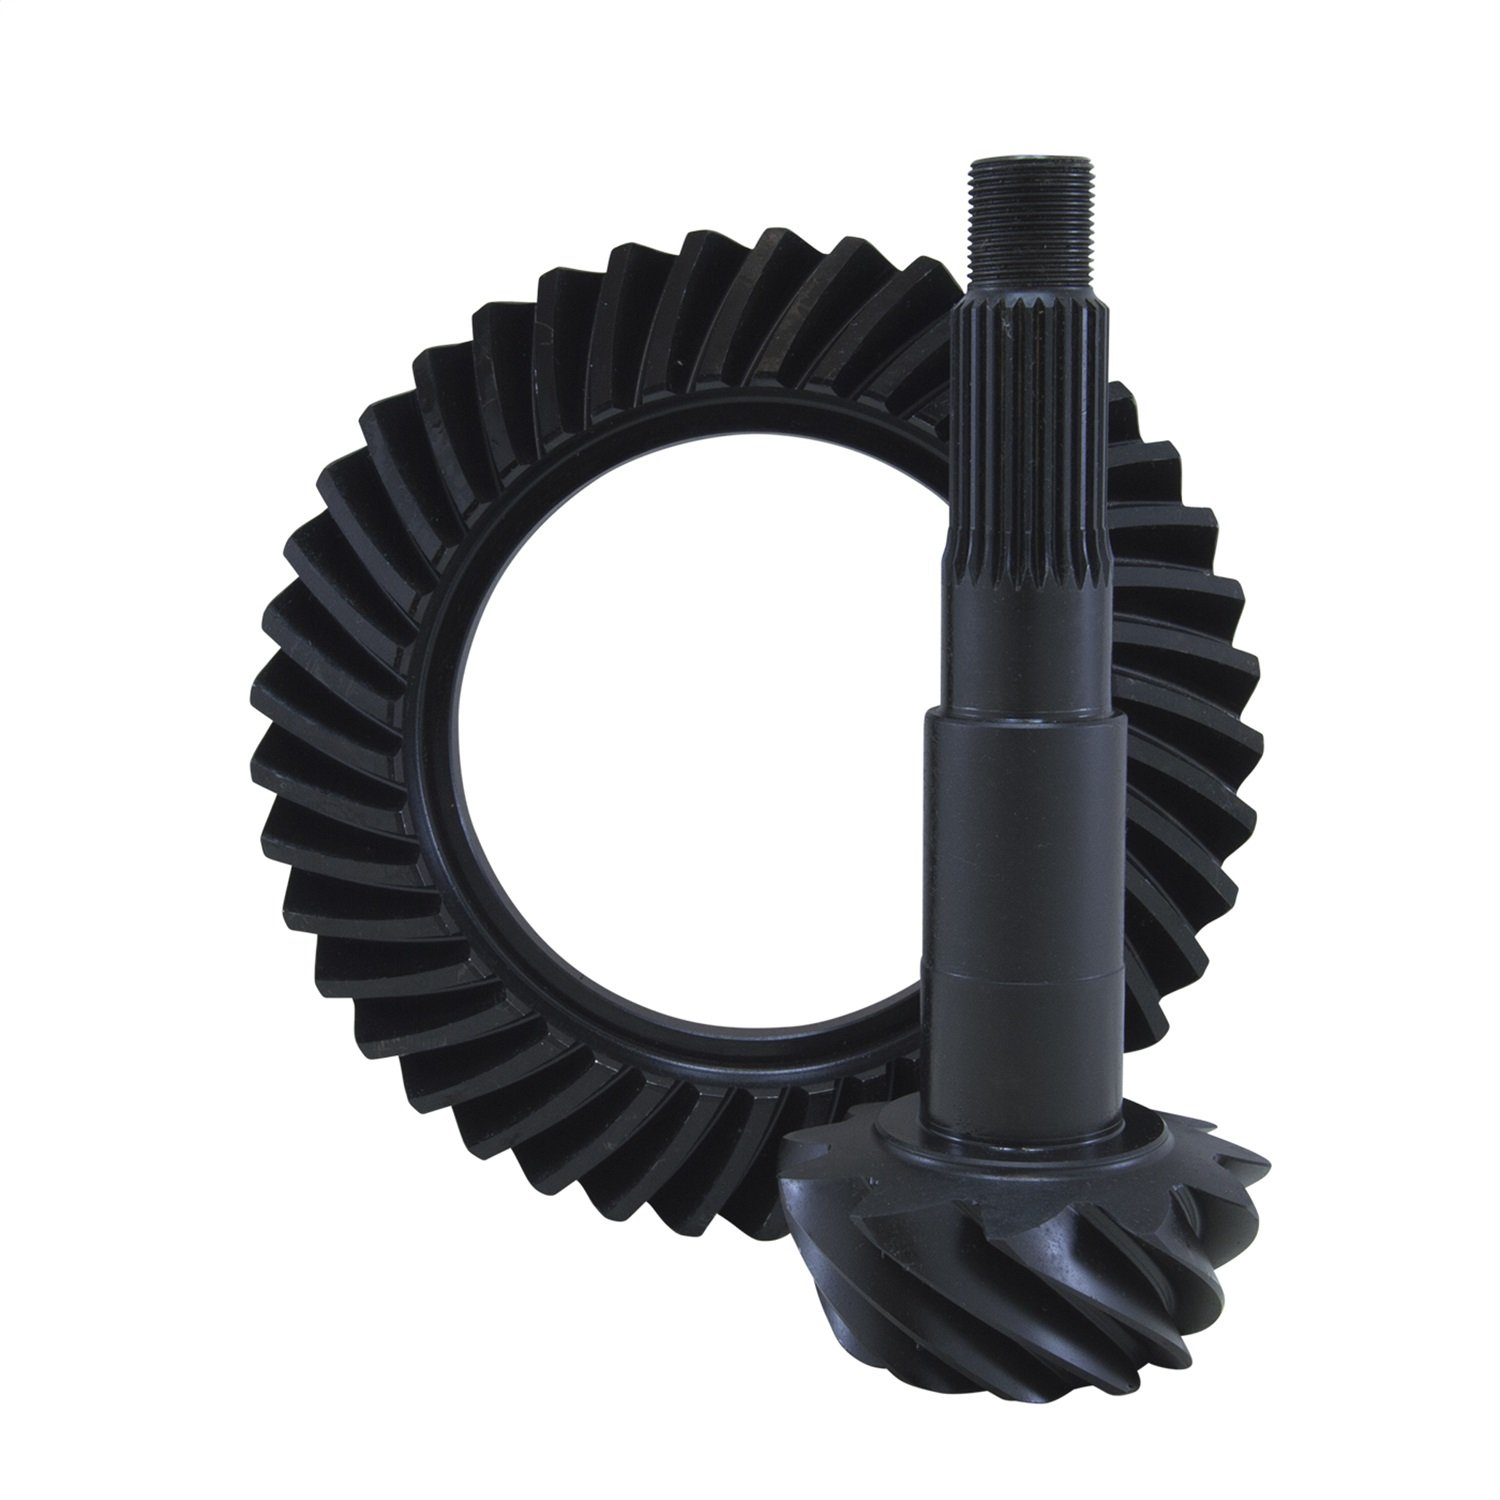 Yukon (YG GM12P-373) High Performance Ring and Pinion Gear Set for GM 12-Bolt Passenger Car Differential by Yukon Gear (Image #1)